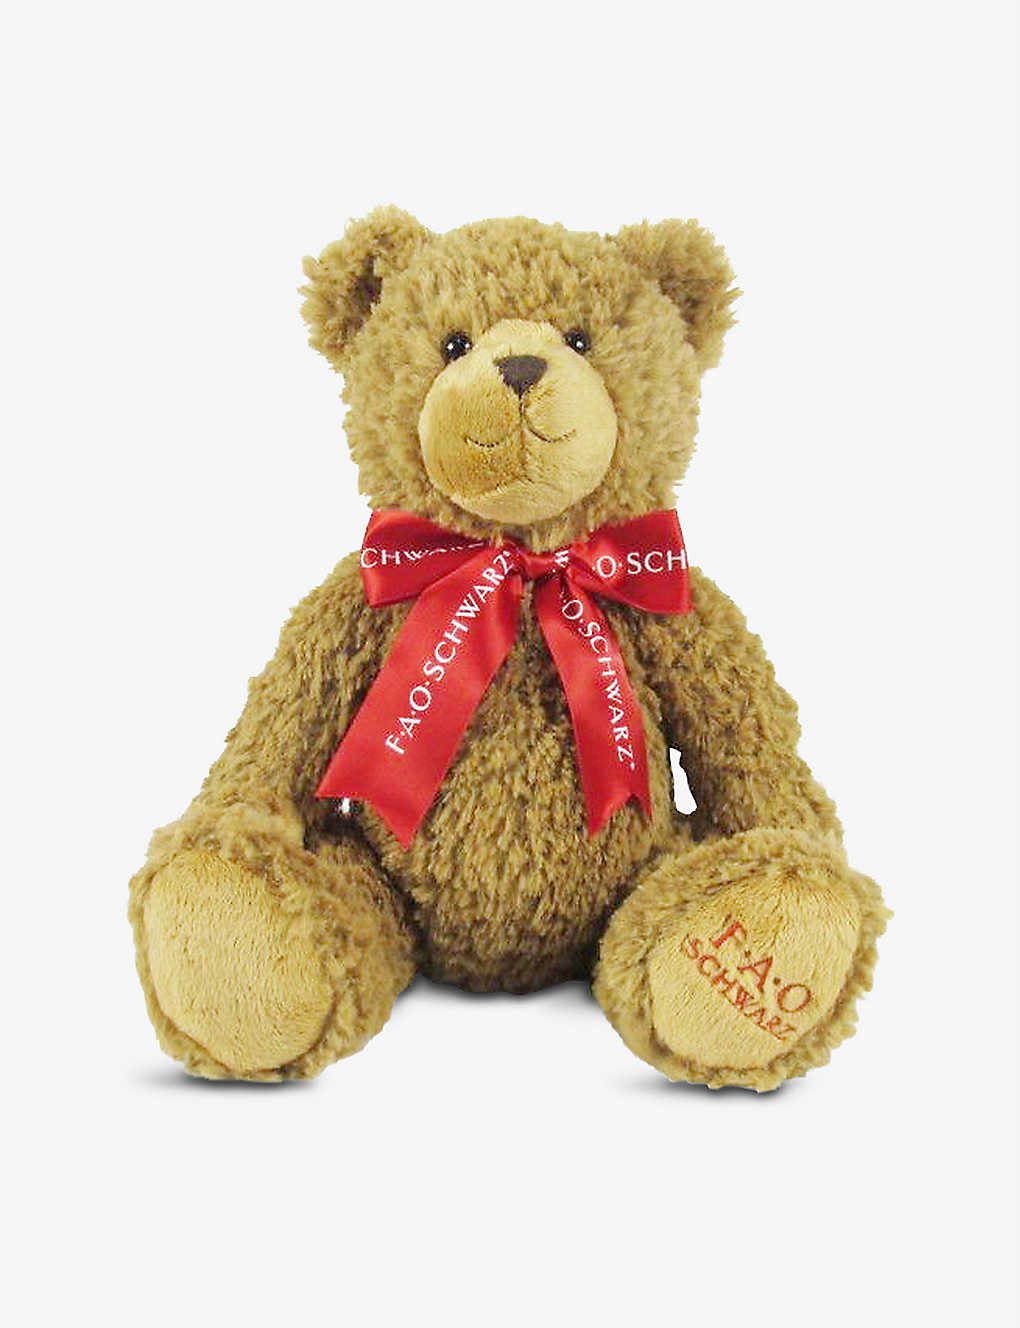 FAO PLUSH: Teddy bear plush toy 30cm